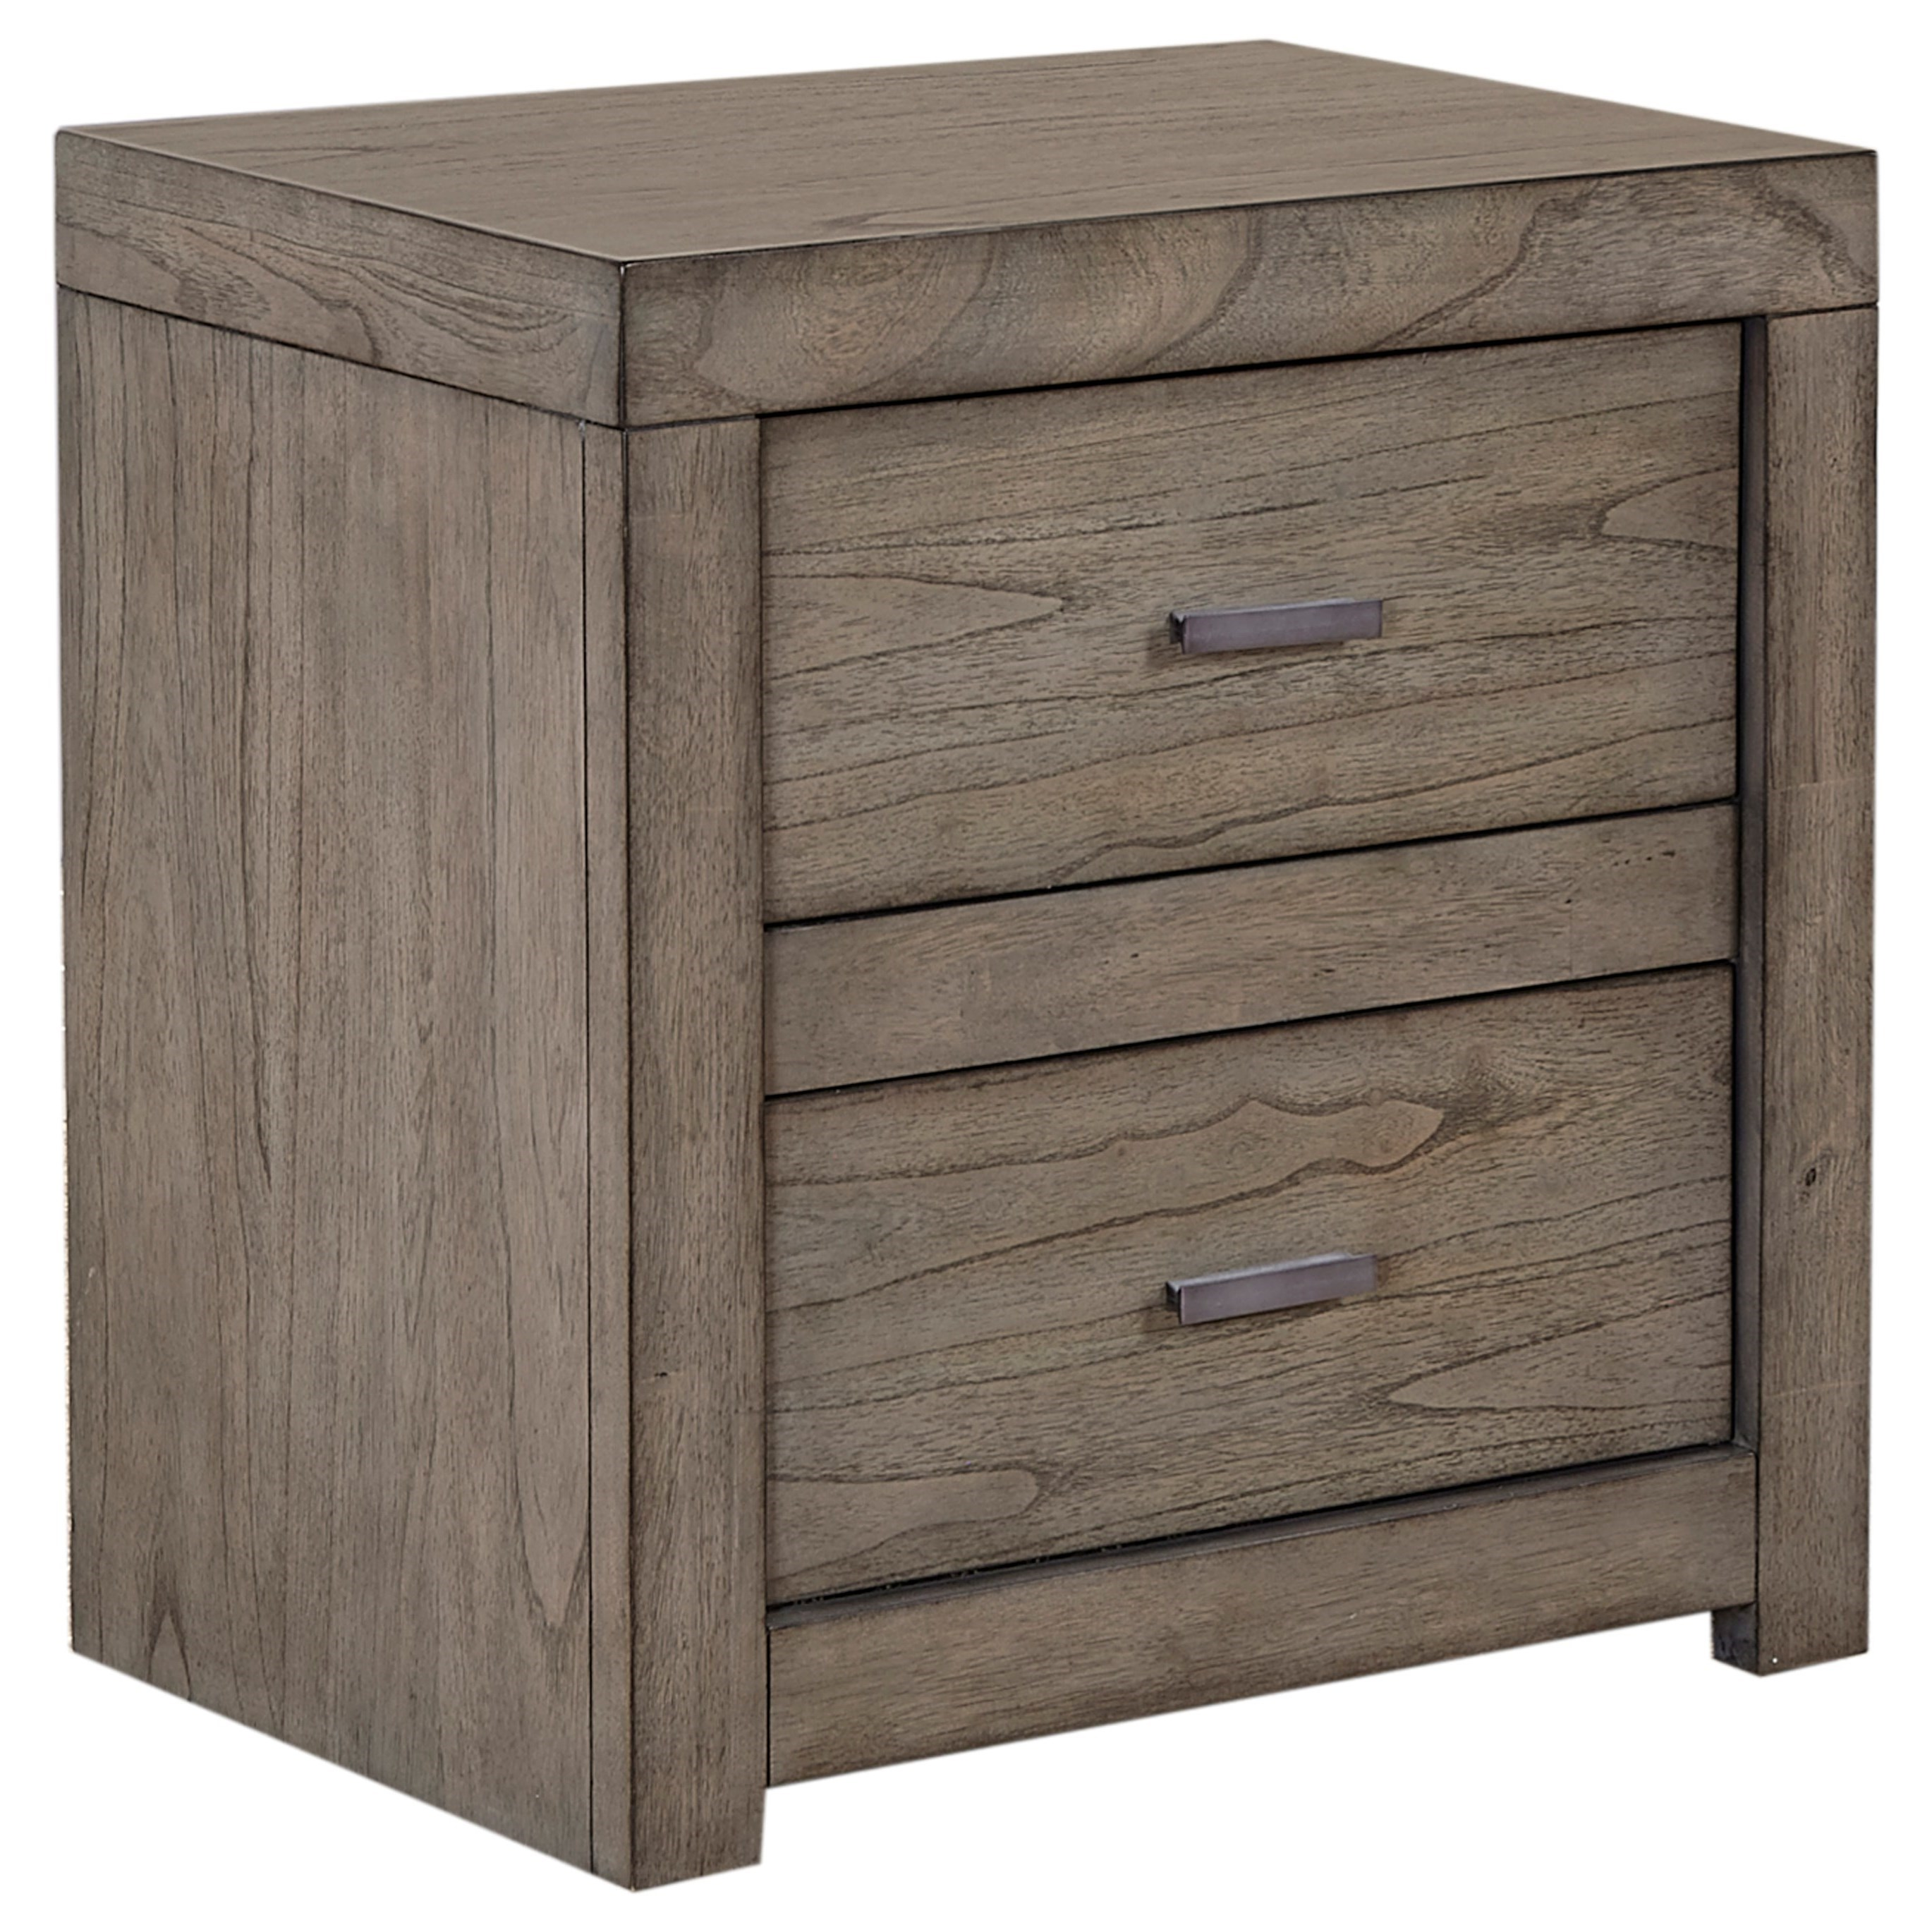 2 Drawer Nightstand with Power